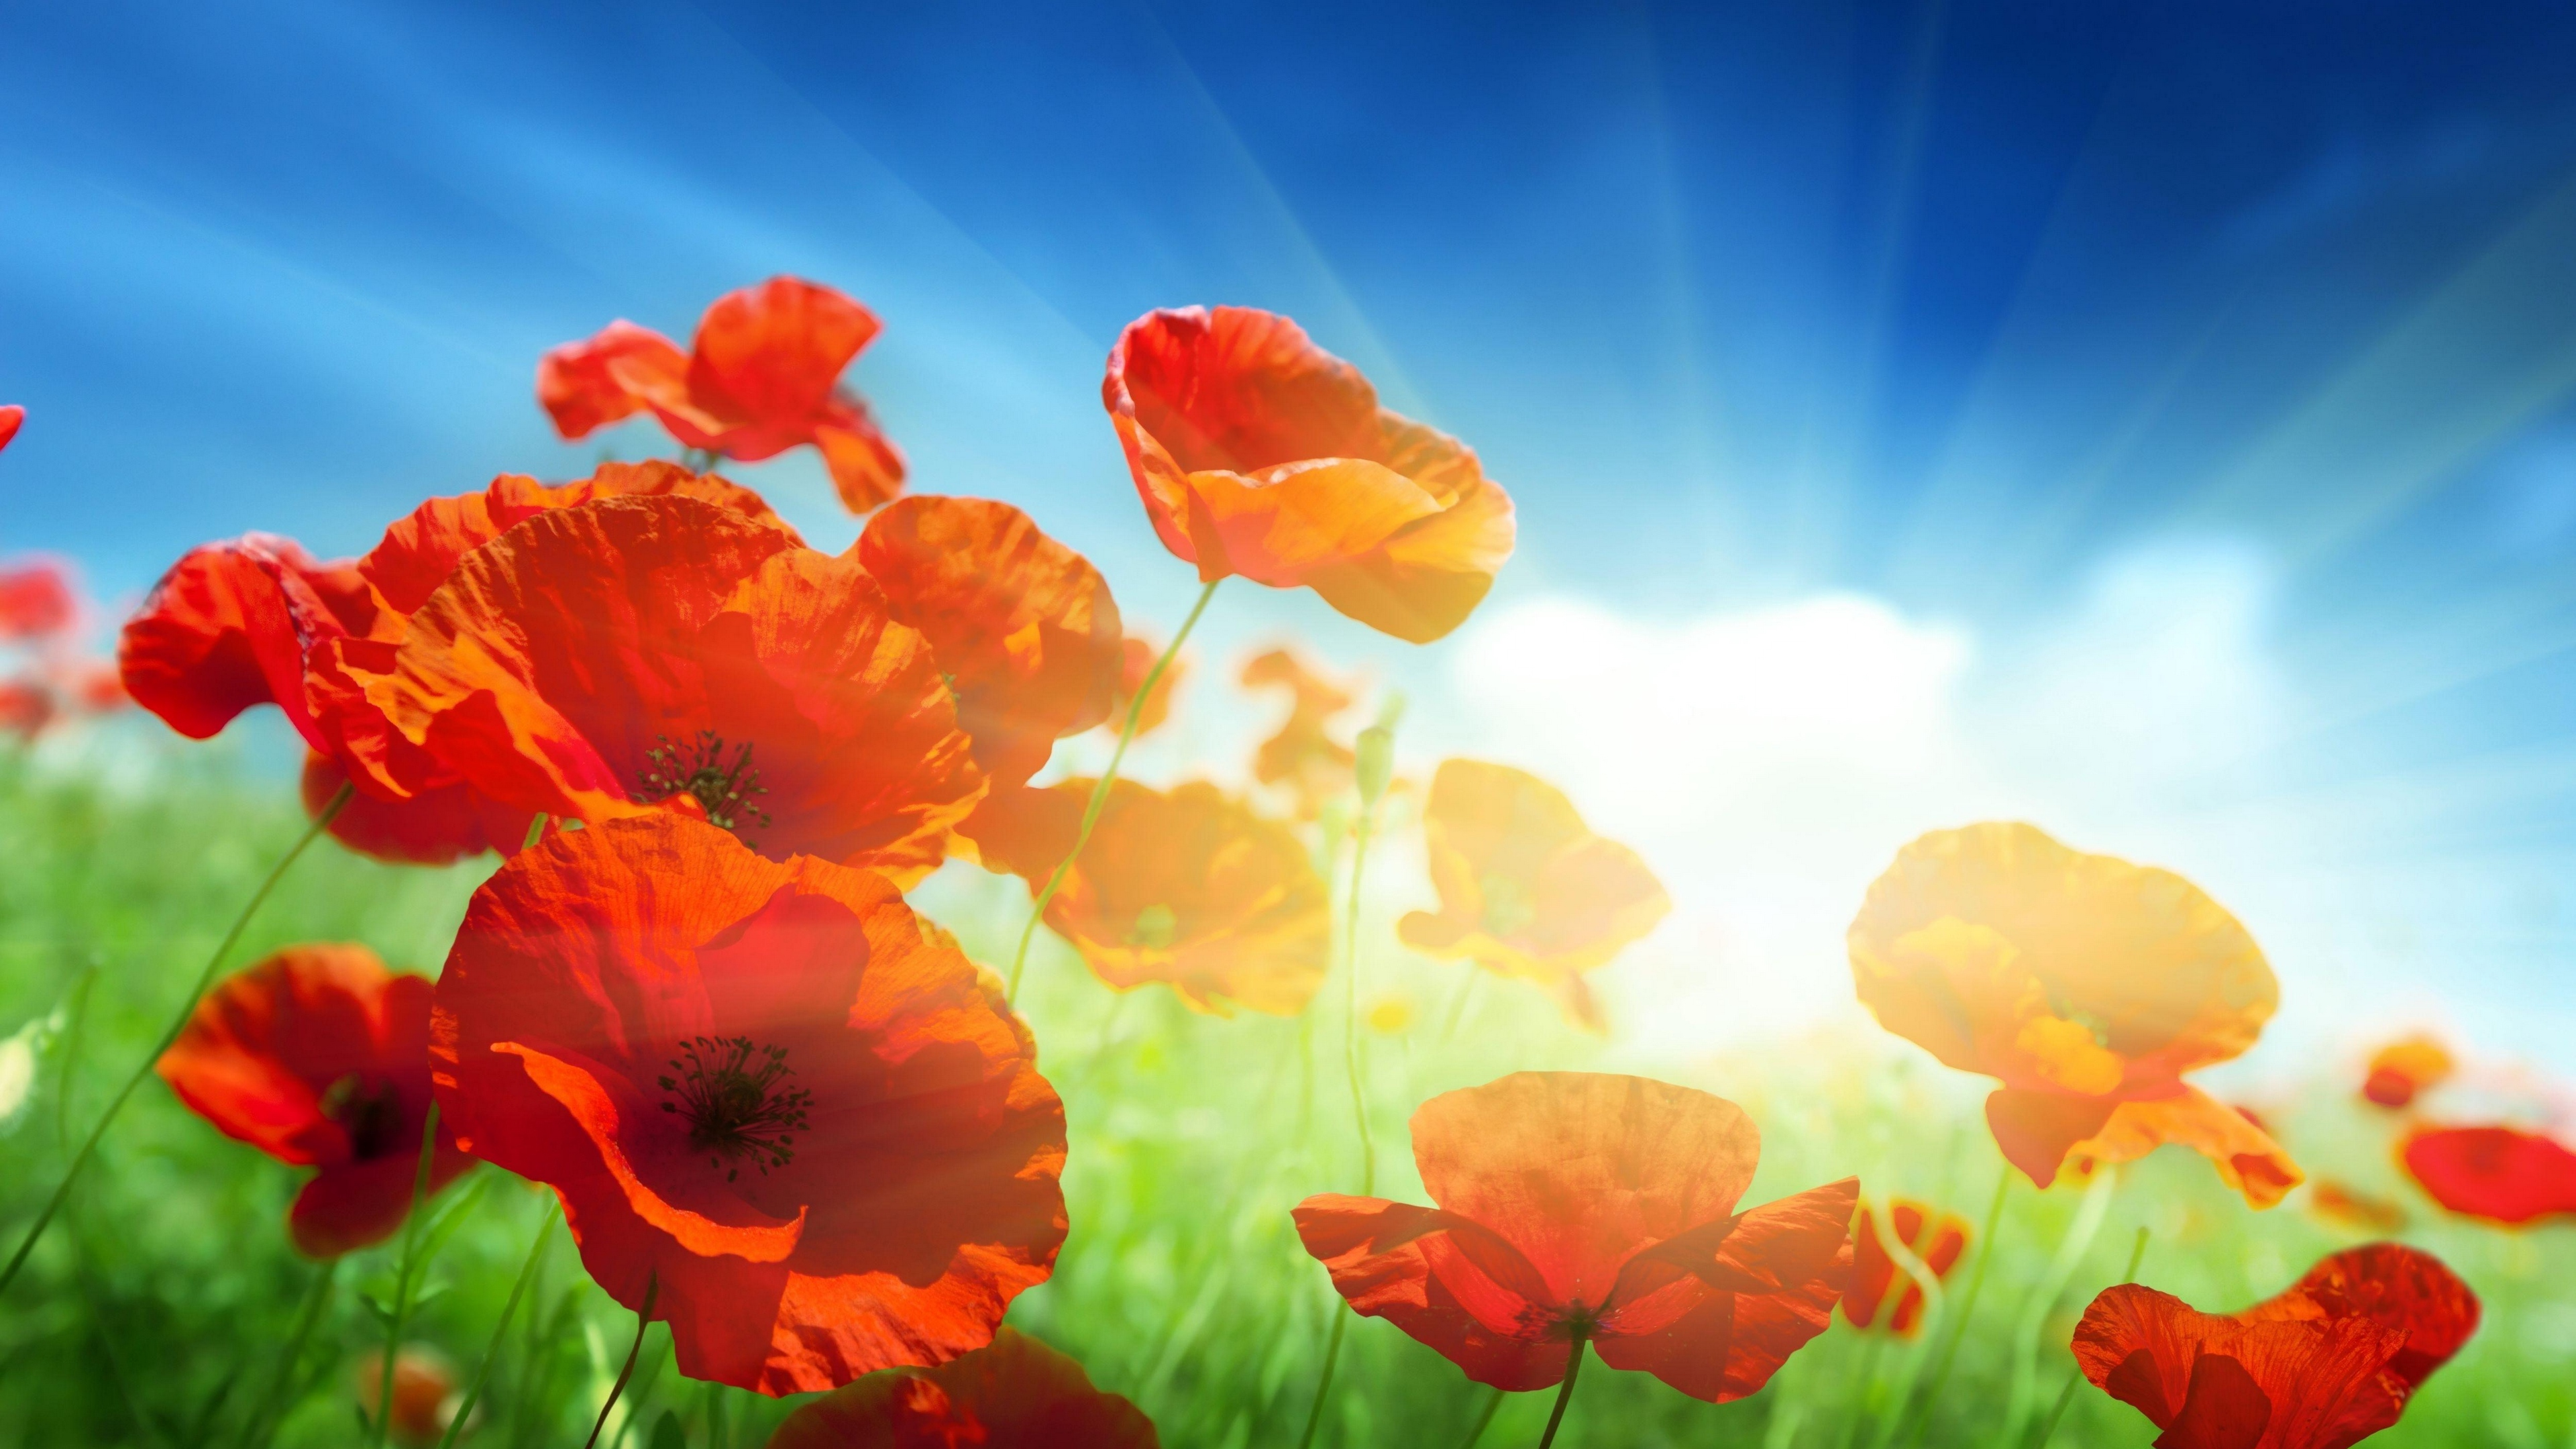 poppies field sky sun rays light 4k 1540064799 - poppies, field, sky, sun, rays, light 4k - Sky, Poppies, Field